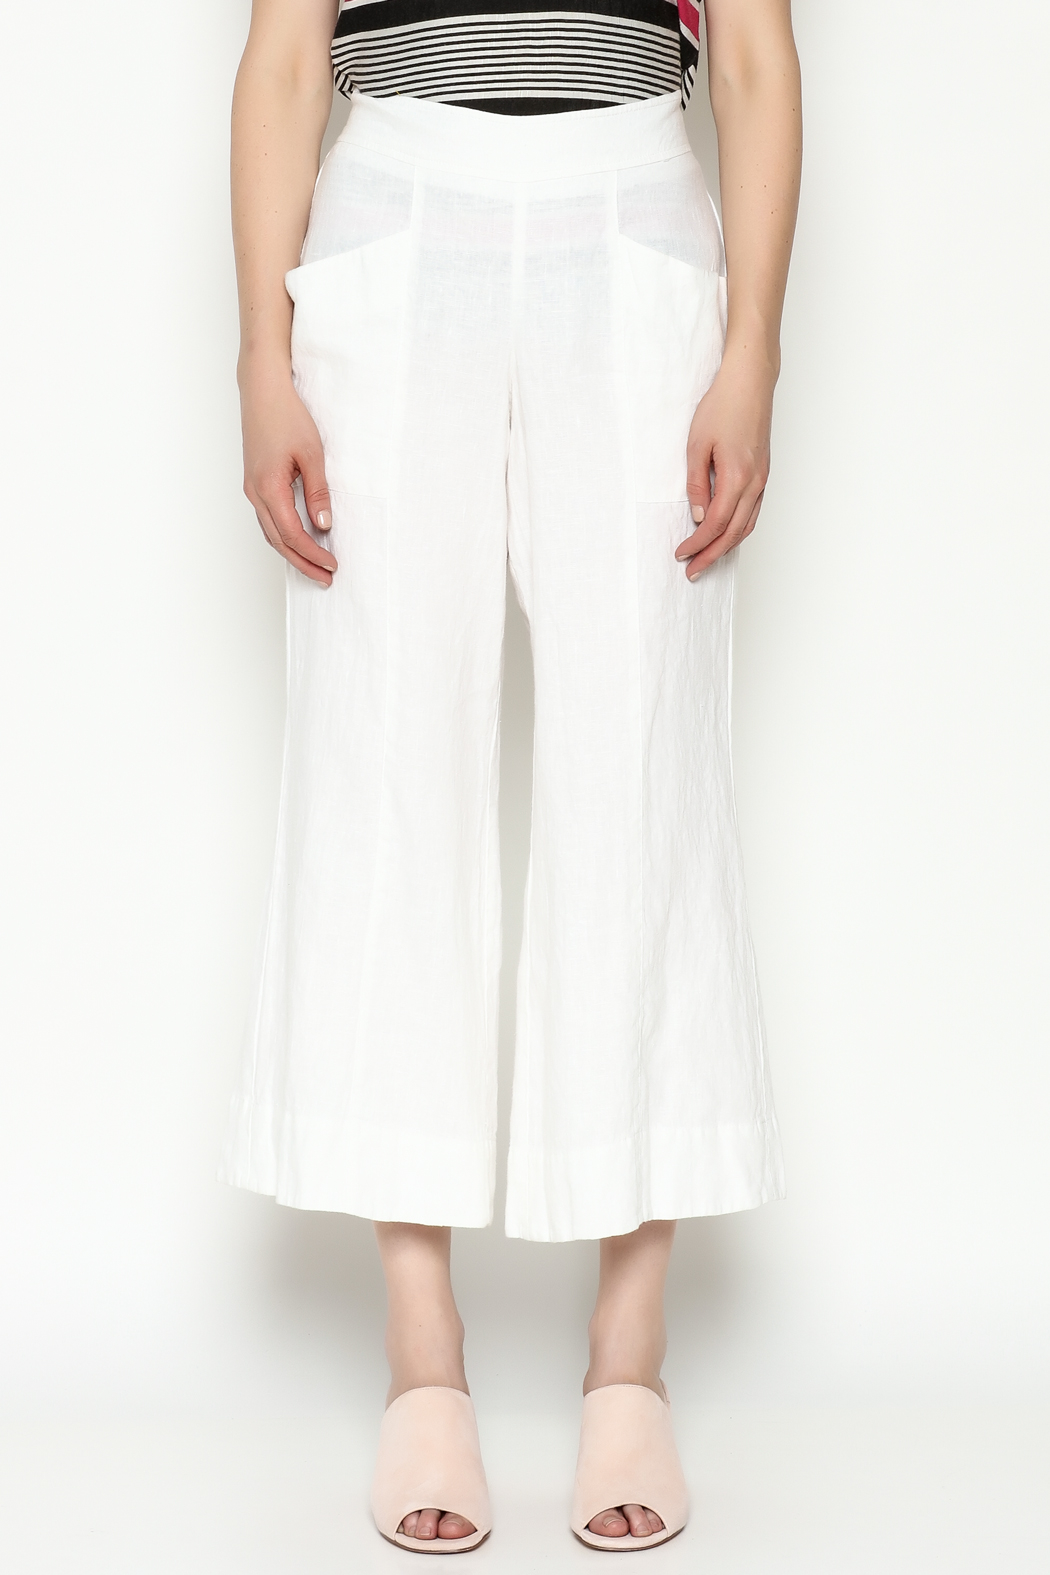 Cousin Earl White Linen Pants - Front Full Image